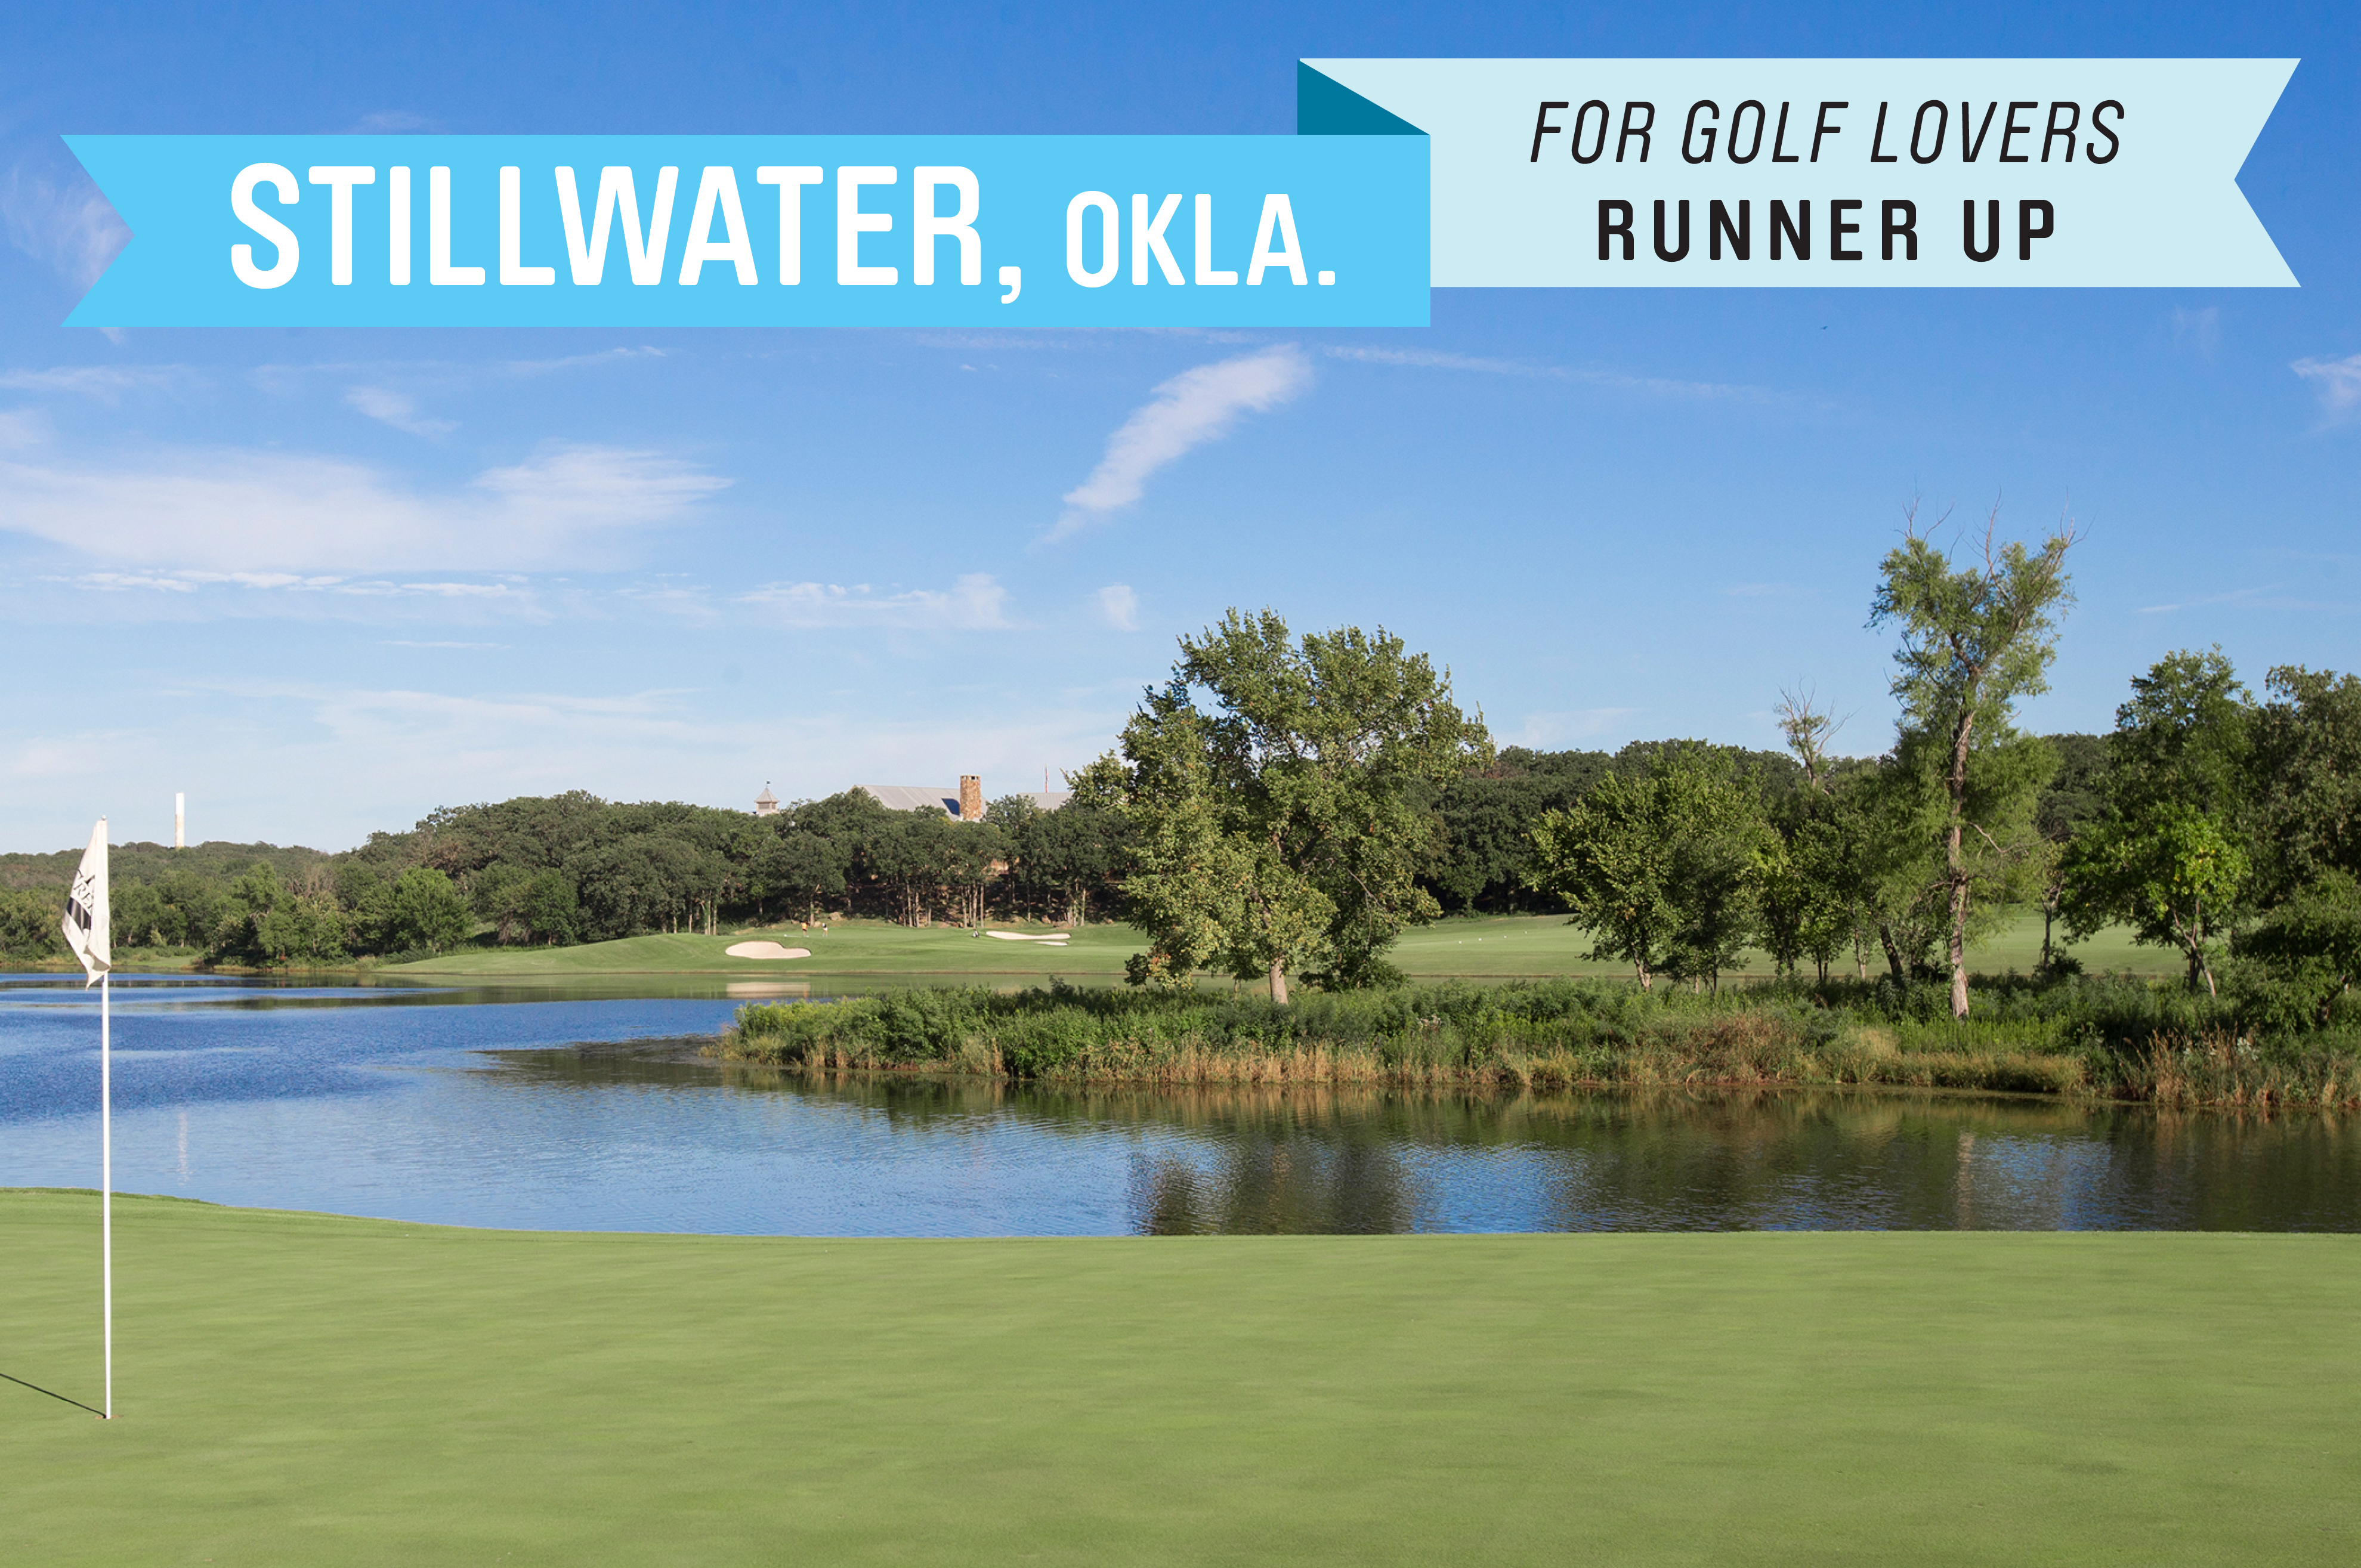 Home to Oklahoma State University, which has been called the University of Golf. The college team's home course is at the Karsten Creek Golf Club, which regularly appears on lists of the best golf courses in the U.S.  There are several top public courses, including The Links at Stillwater and Lakeside Memorial. The median home price is $136,000.